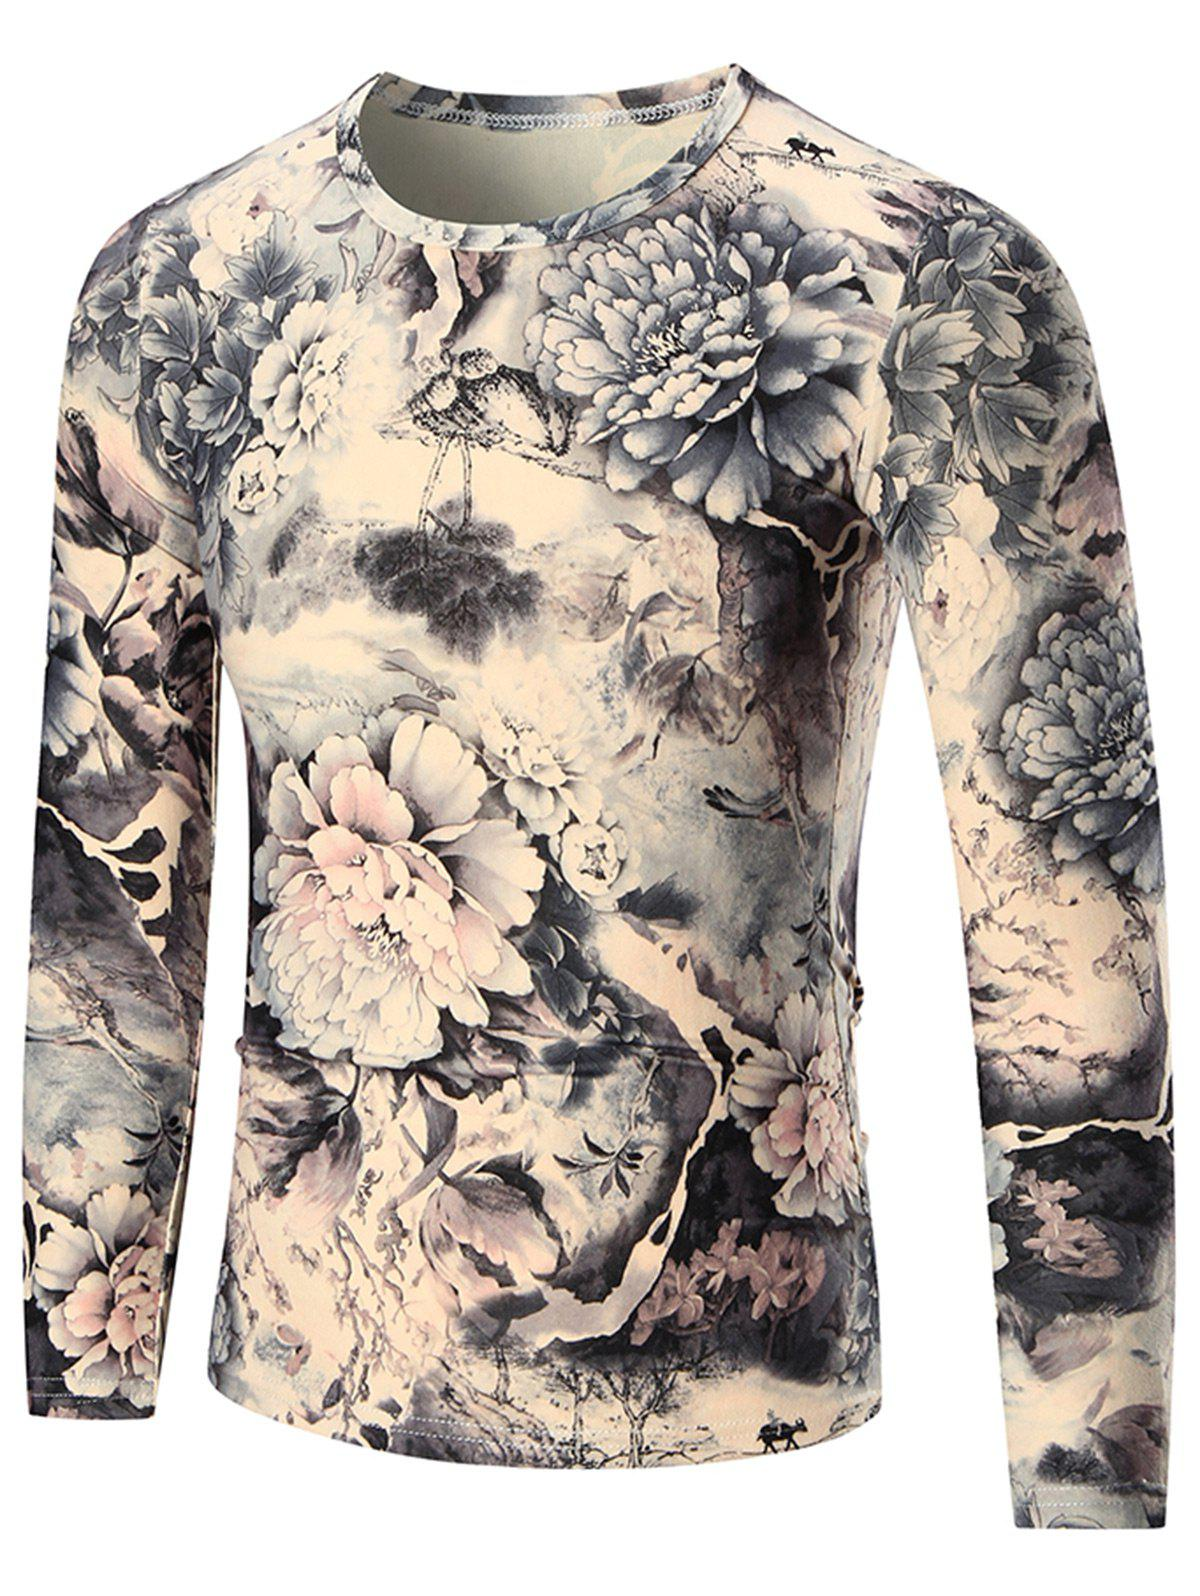 Peony Print Crewneck T-shirt à Manches Longues - multicolore 3XL